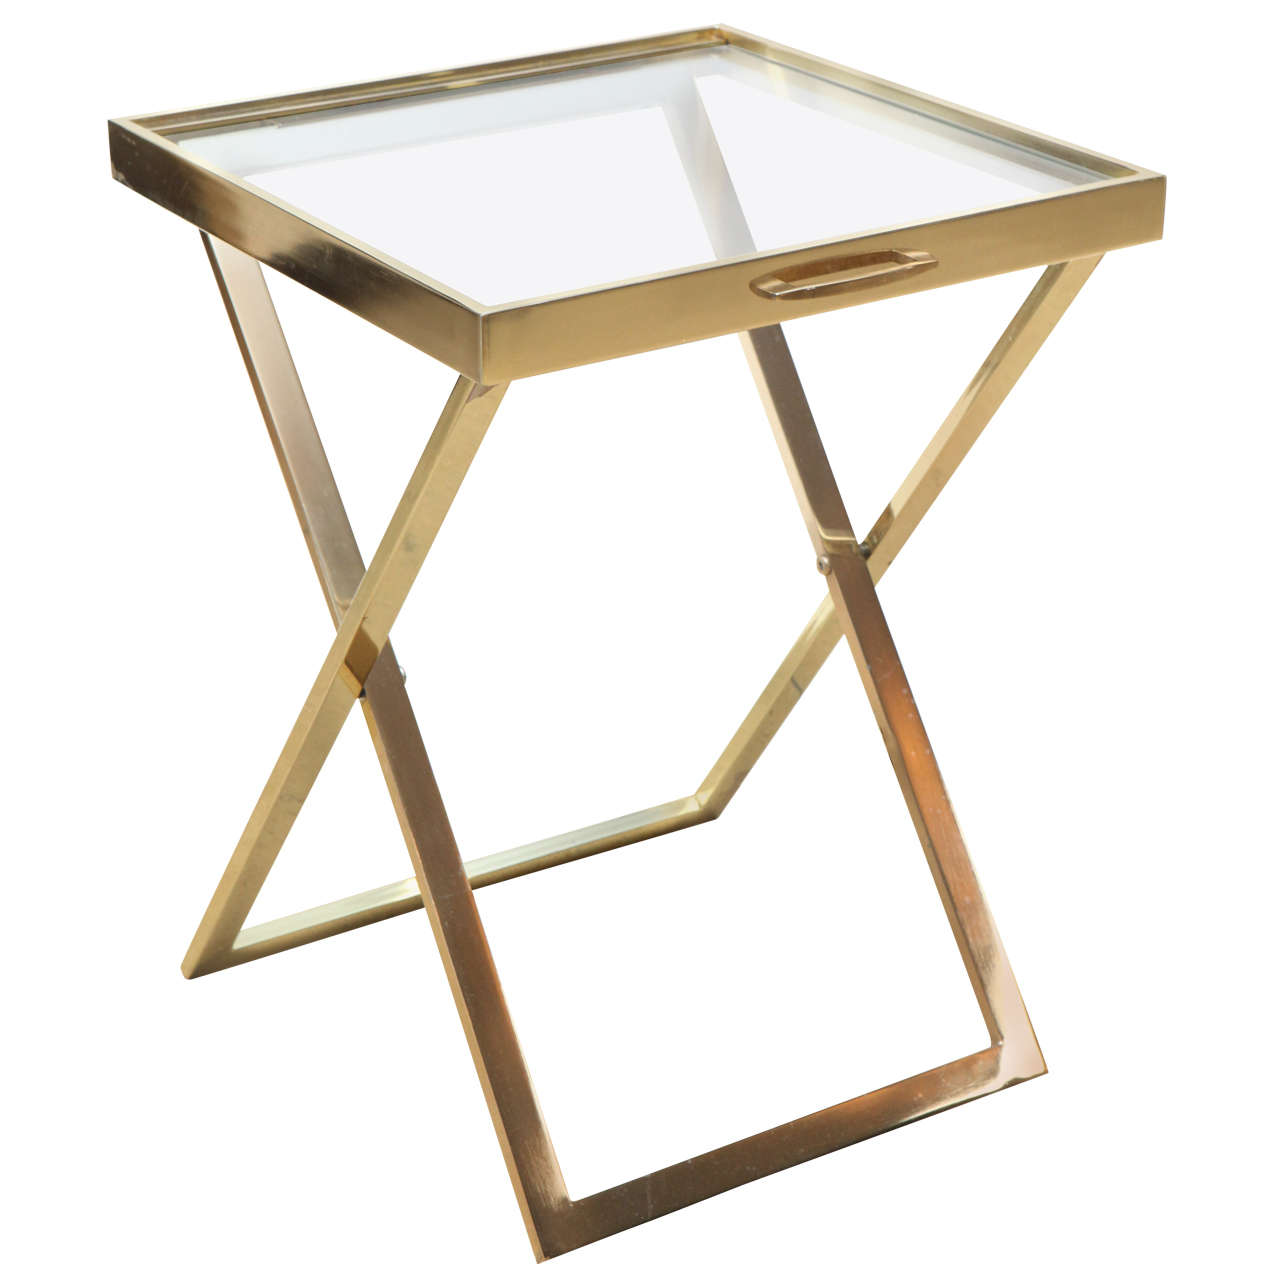 Brass Folding Tray Table At 1stdibs